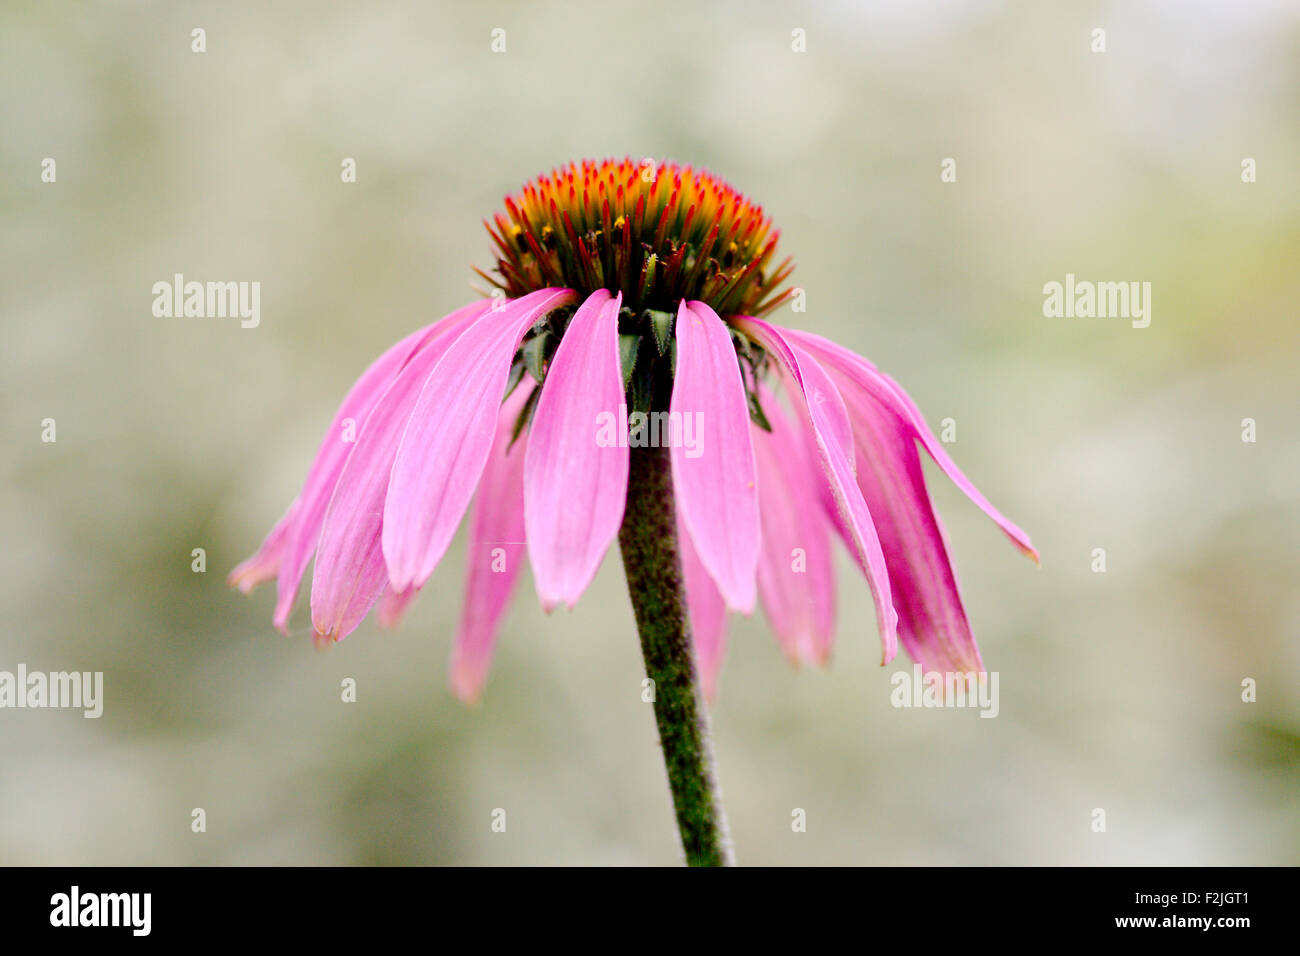 Lone, singular, pale purple coneflower, Echinacea pallida, close-up against a pale blurred background - Stock Image